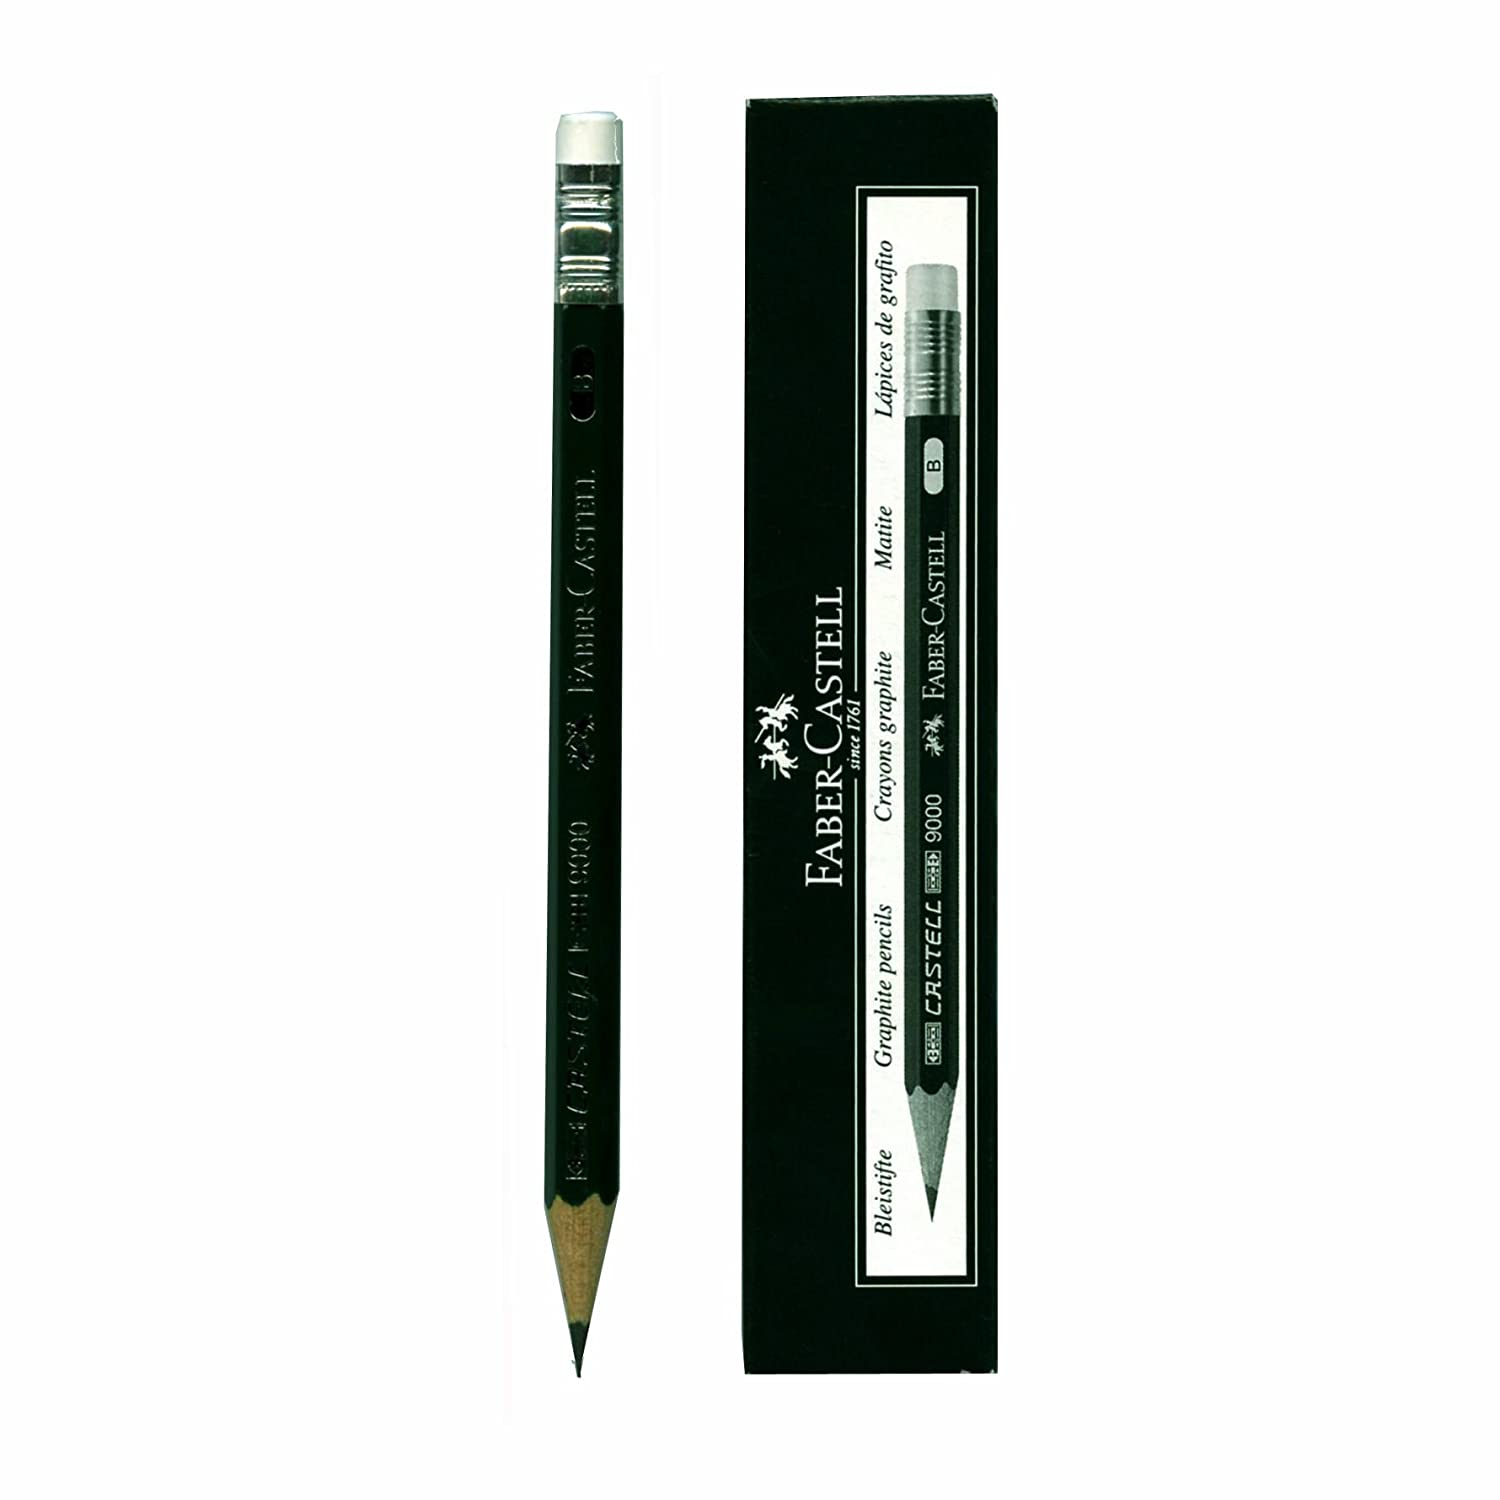 Faber-Castell Castell 9000 Perfect Pencil in Gift Box